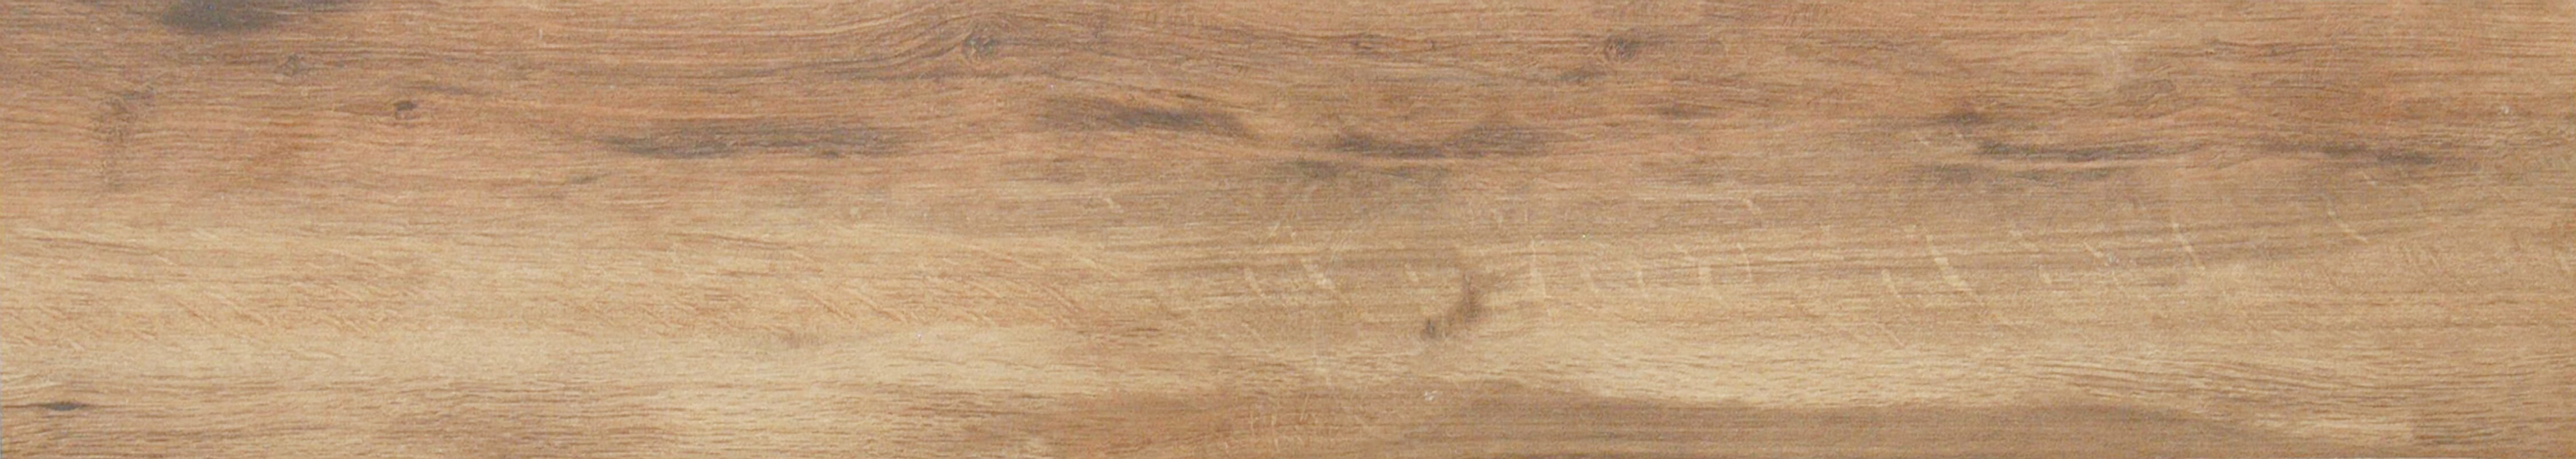 Msi botanica cashew 6 x 24 porcelain wood tile in glazed botanica cashew 6 x 24 porcelain wood tile in glazed textured dailygadgetfo Images